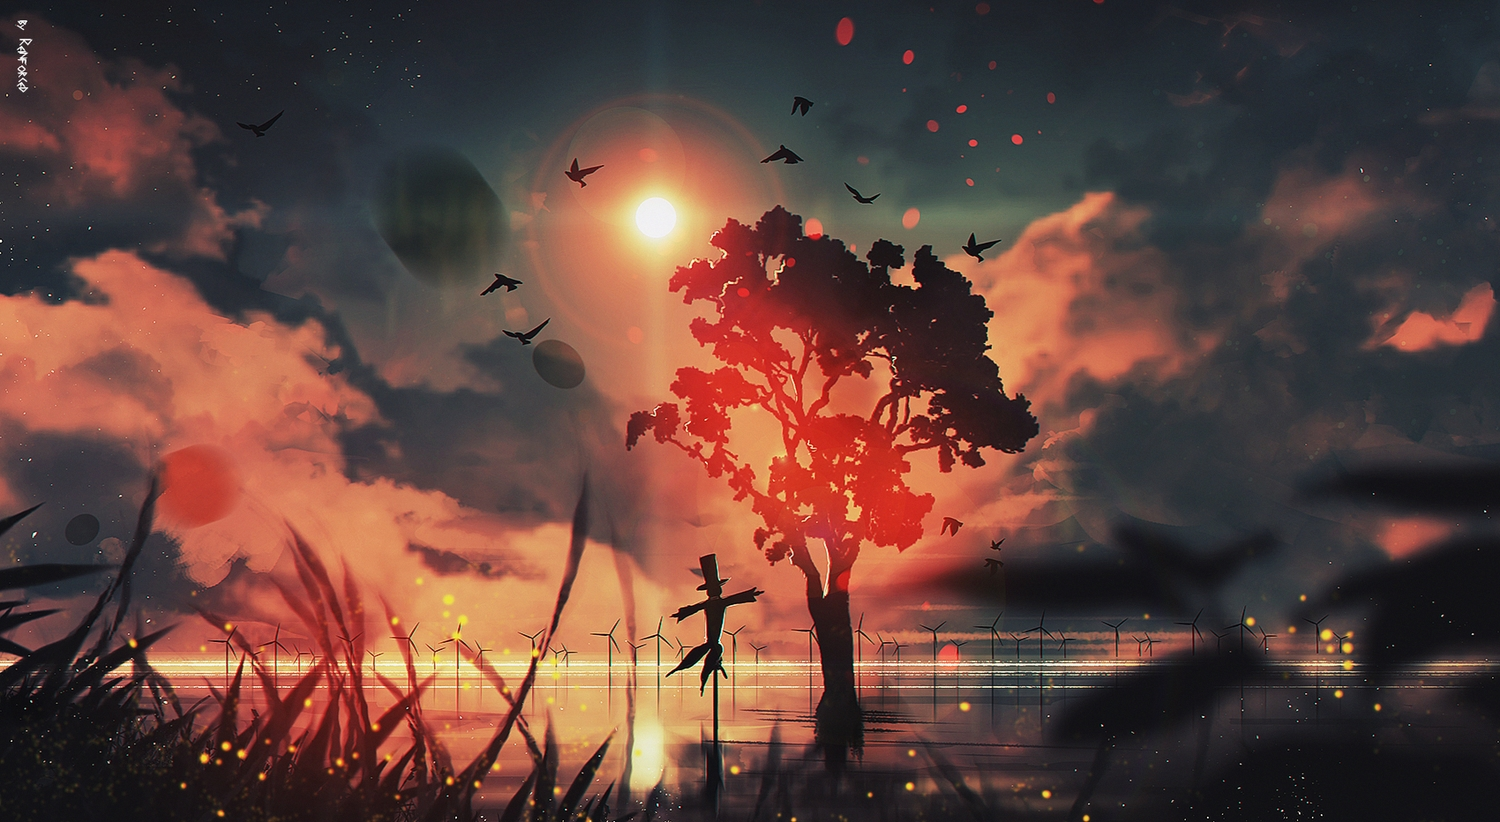 animal bird clouds grass nobody original reflection reinforced scenic signed silhouette sky sunset tree water windmill